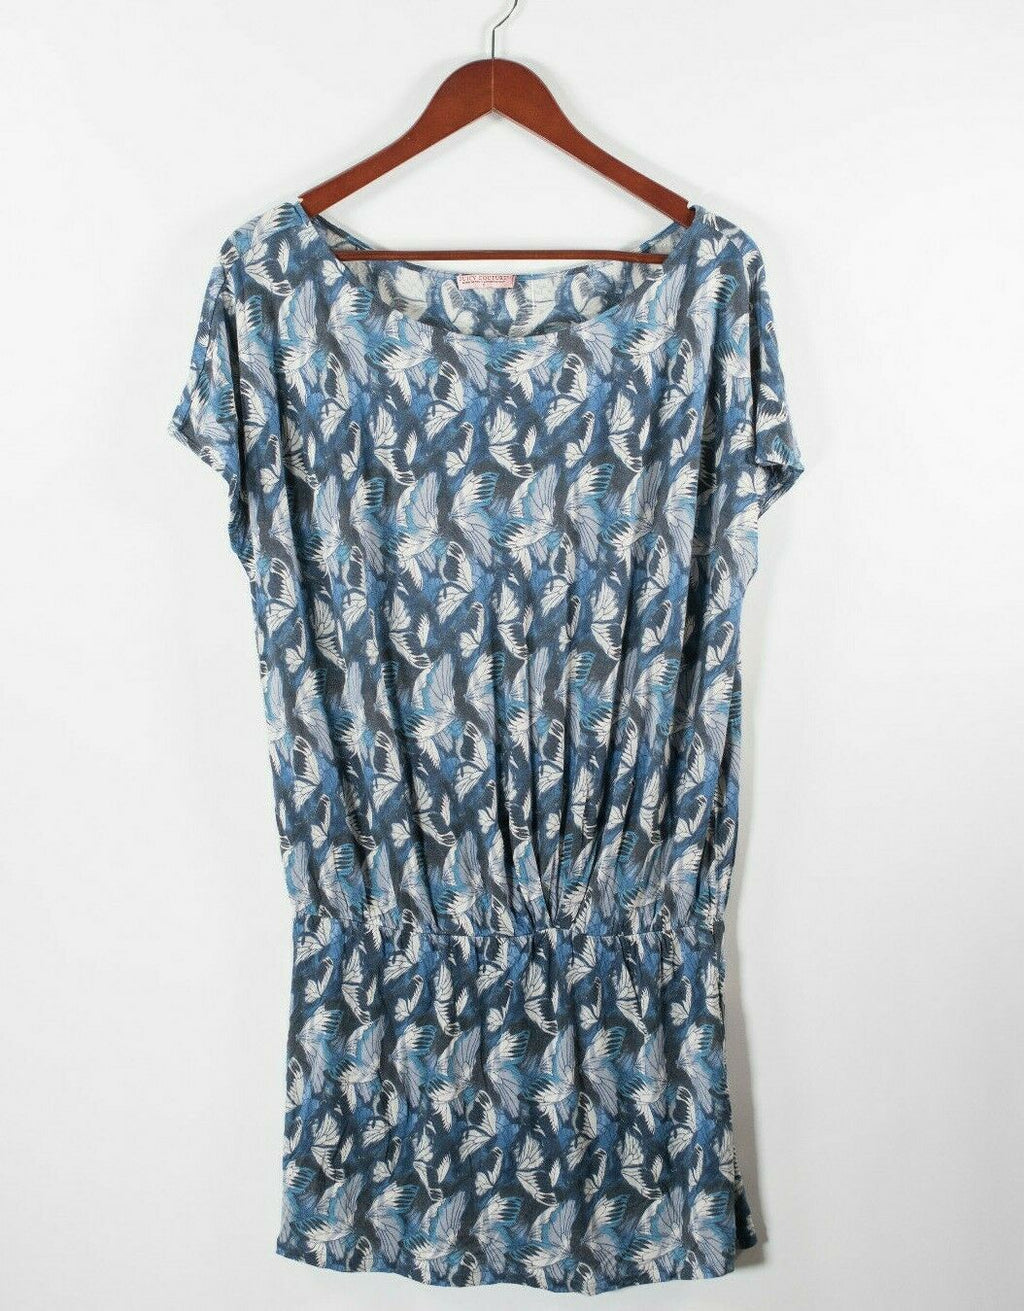 Juicy Couture Women Petite XS Blue Shirt Dress Tunic Butterfly Print Drop Waist